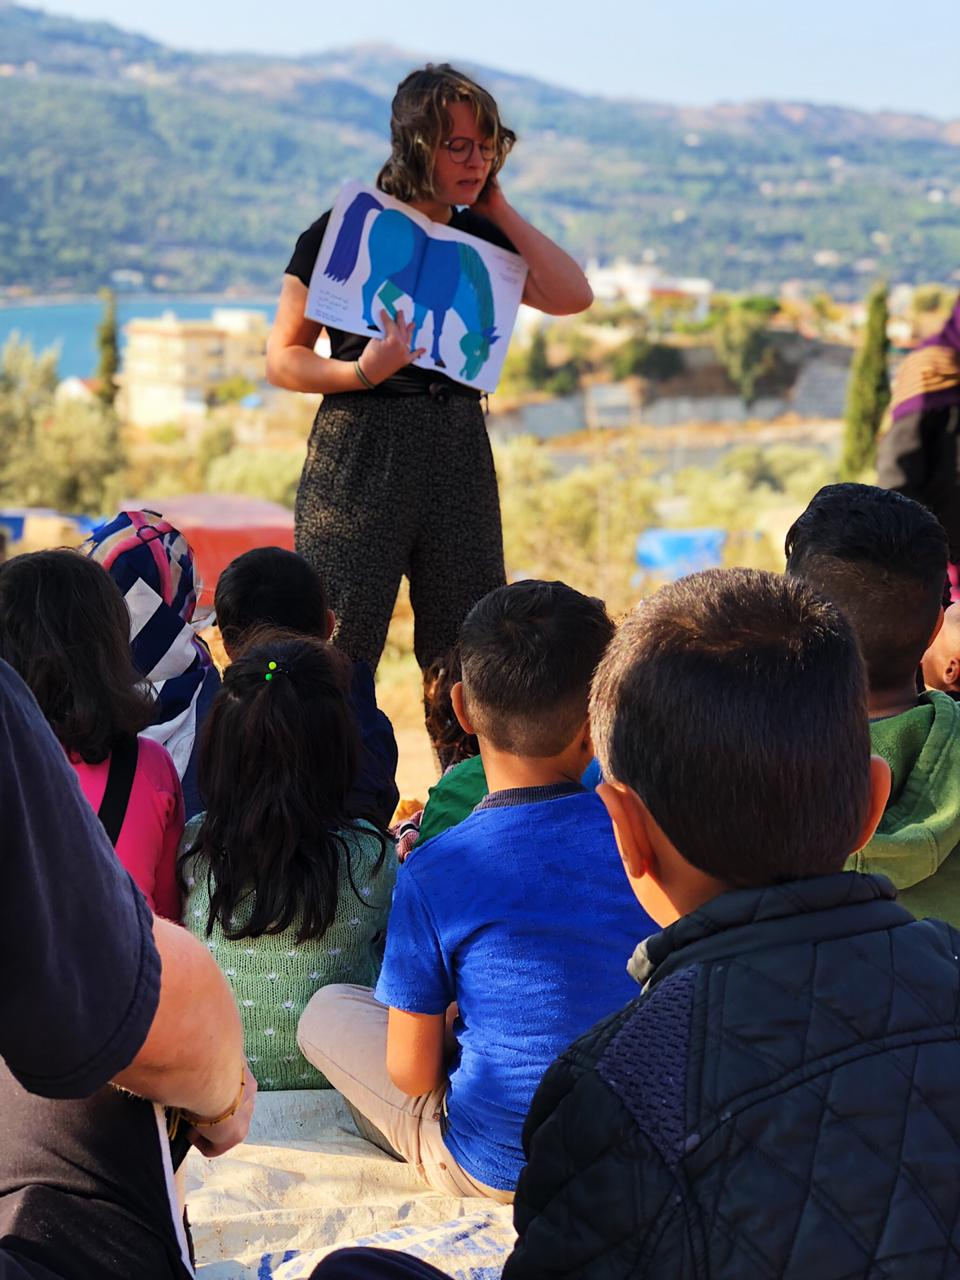 Our Mission - Samos Volunteers provides psychosocial support, combating boredom and instilling a sense of normality in the life of people living in the camp. We are determined to remain on Samos until refugees no longer need our support.Learn More